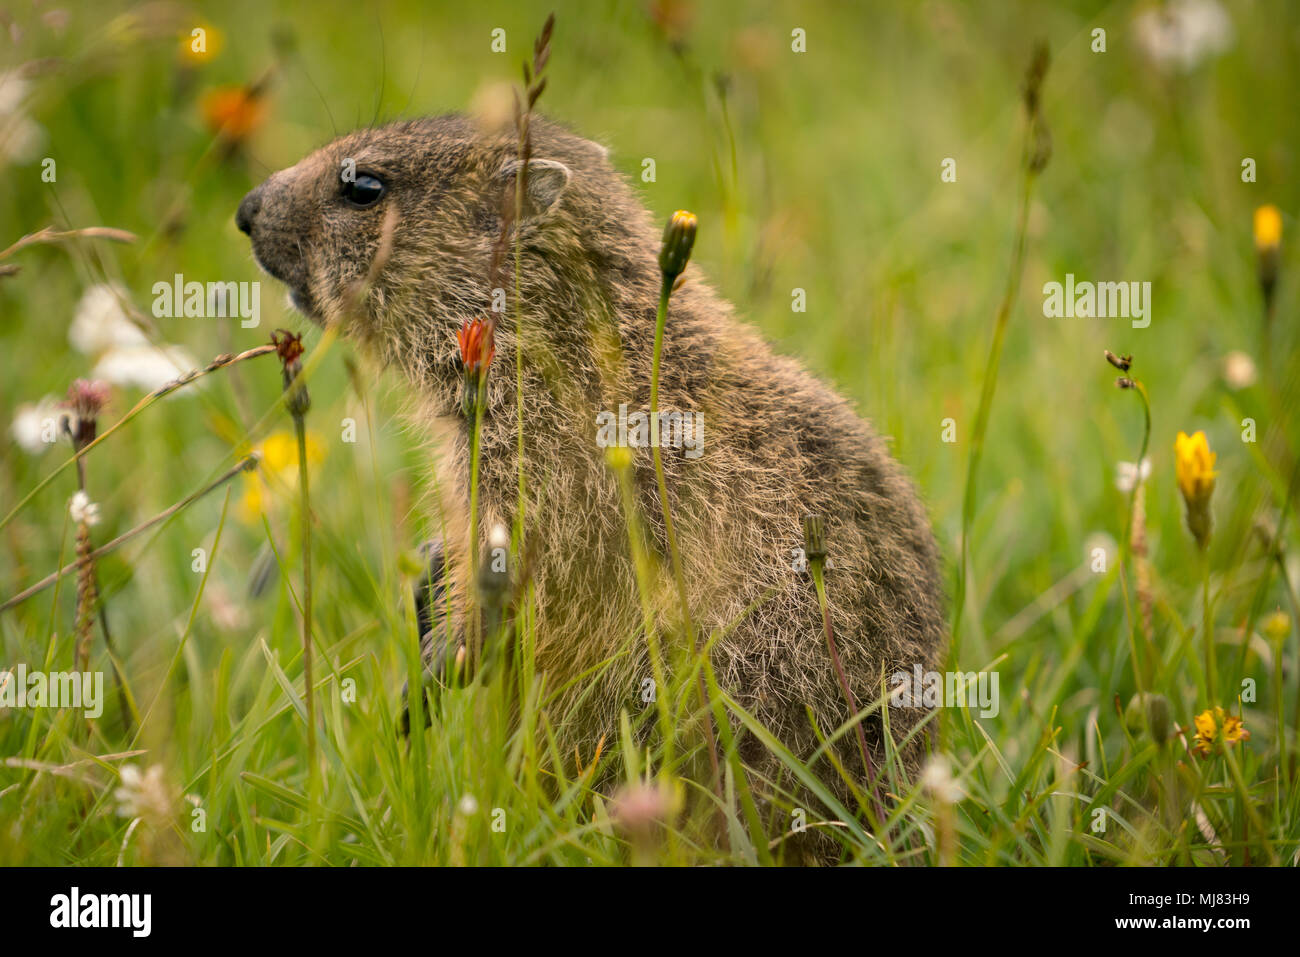 baby marmot searching for food - Stock Image